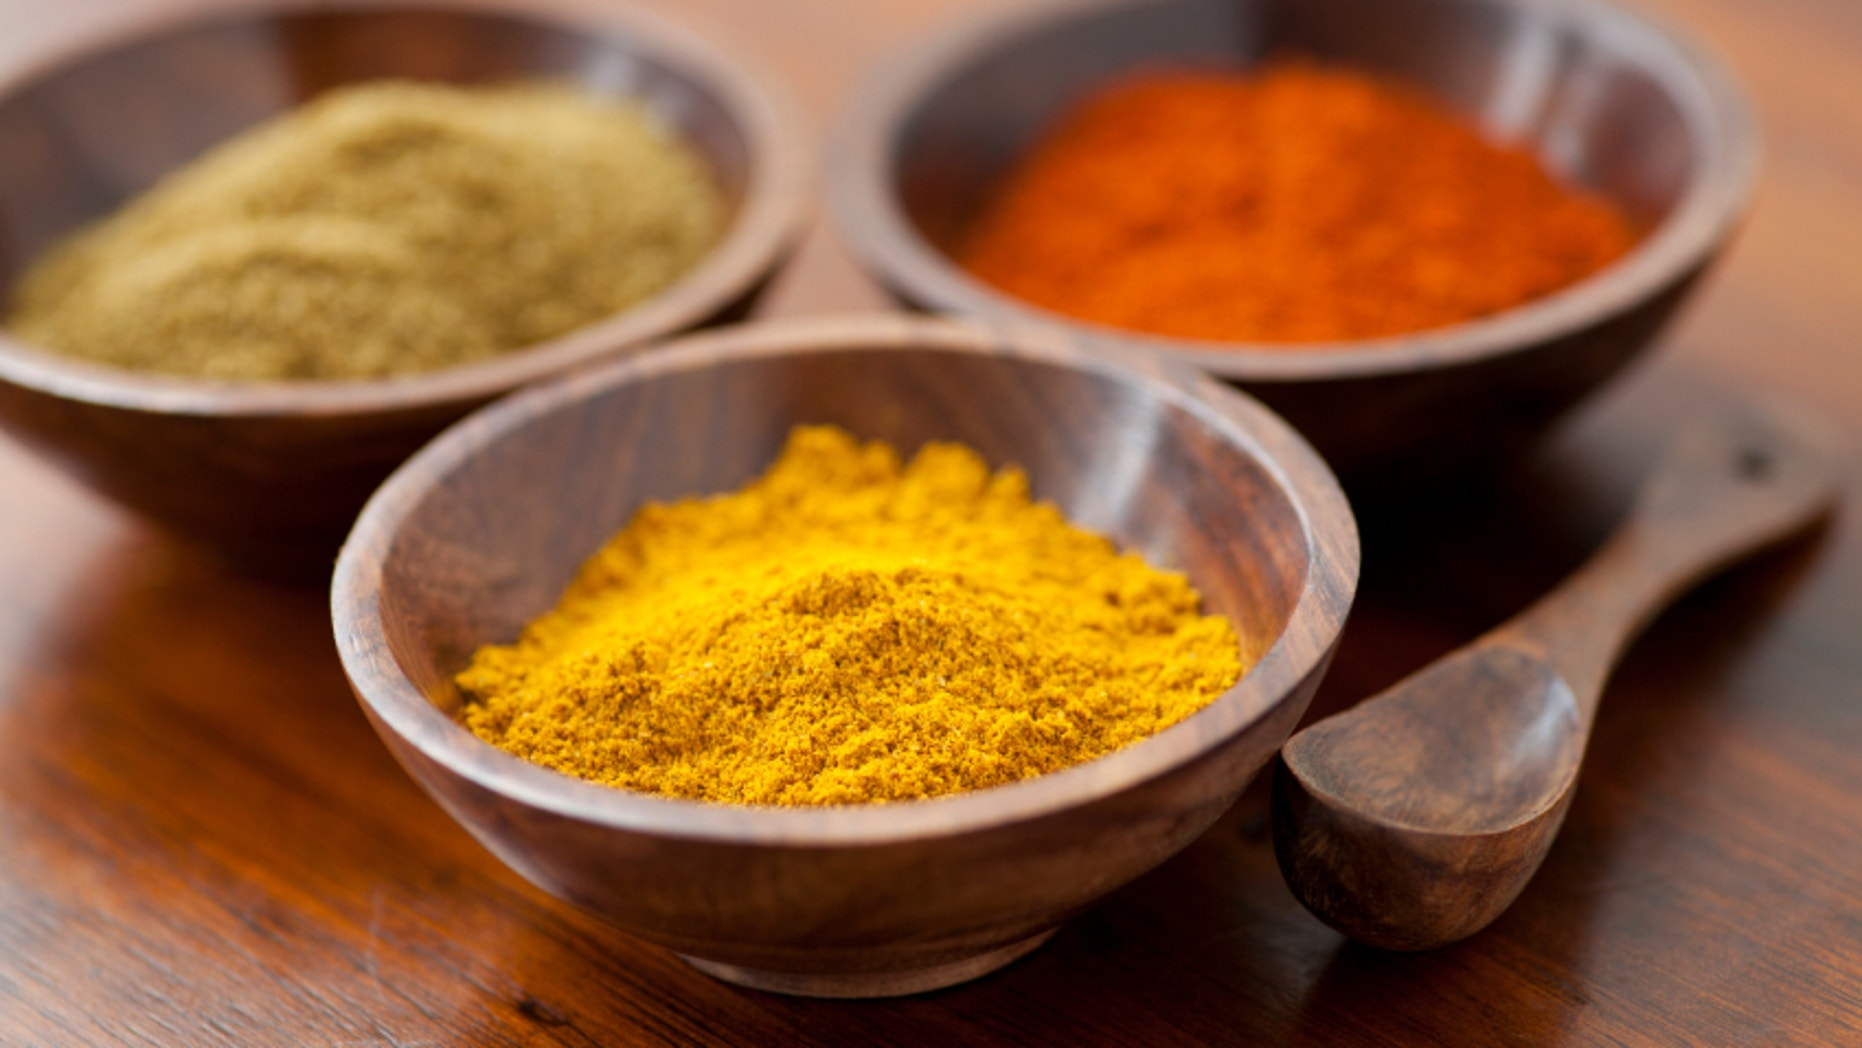 Turmeric Extracts May Protect Heart Post-Surgery